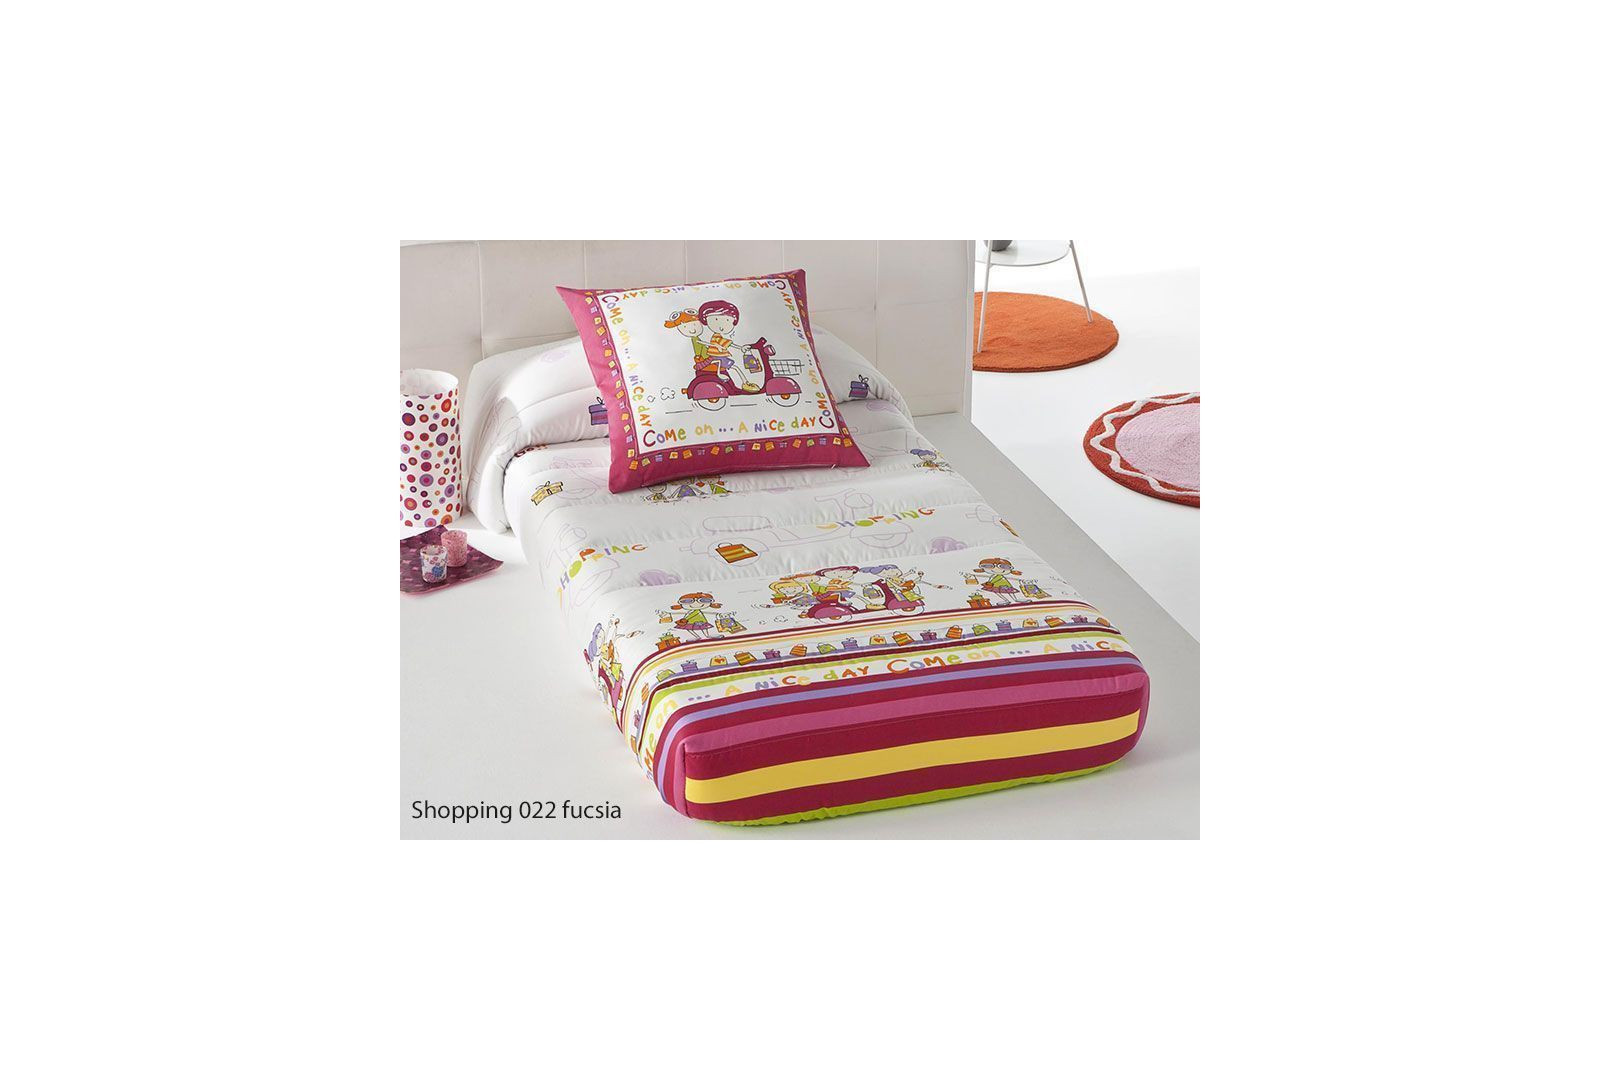 Edredon Ajustable Cama 90 Único EdredÓn Ajustable Shopping 90cm Decorajoven Of Edredon Ajustable Cama 90 Contemporáneo Edredón Ajustable Patch Reig Marti